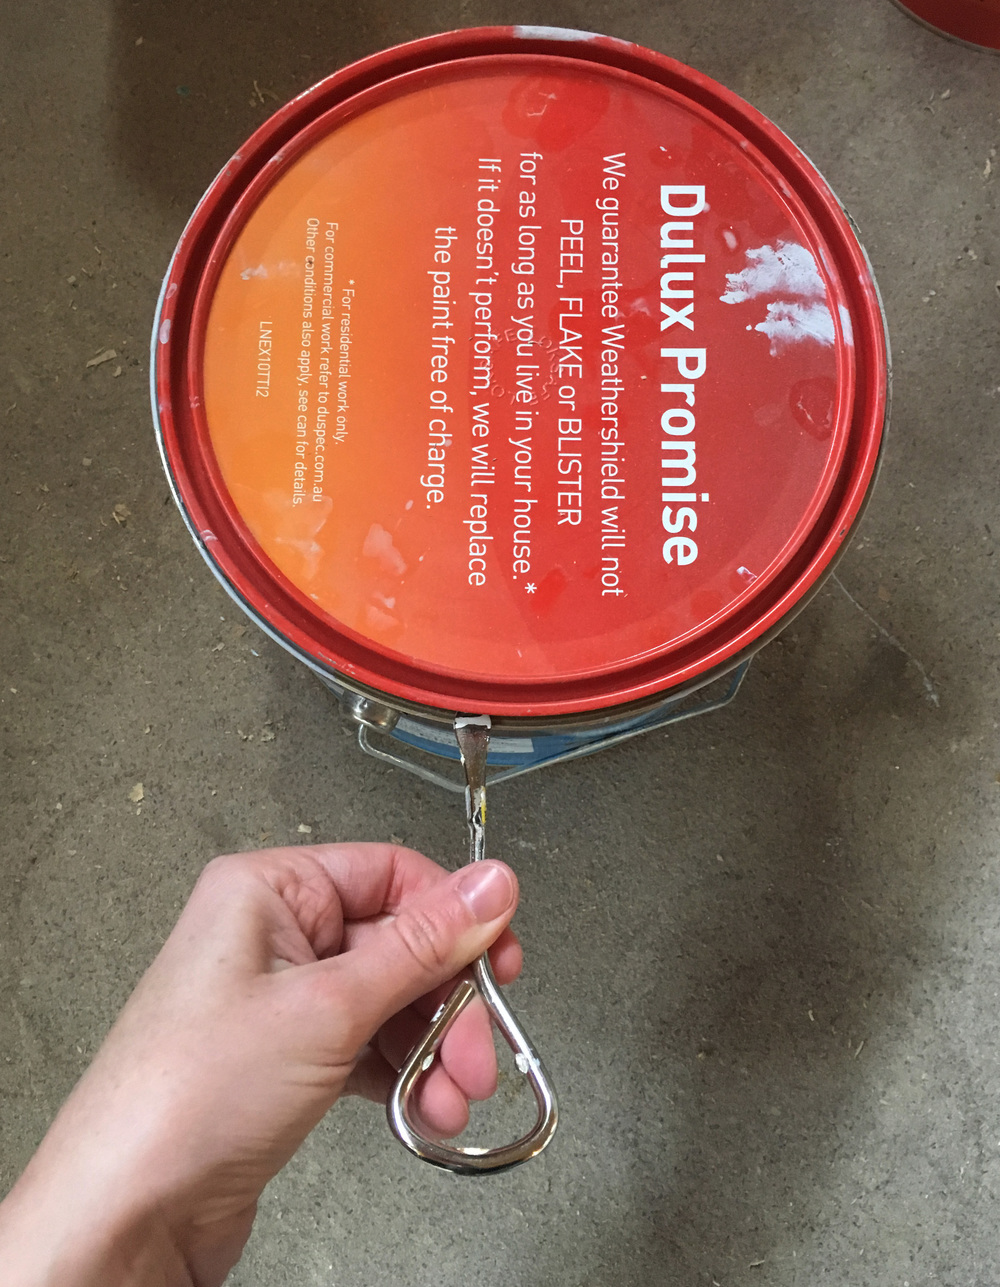 Use a can-opener to open the paint can easily